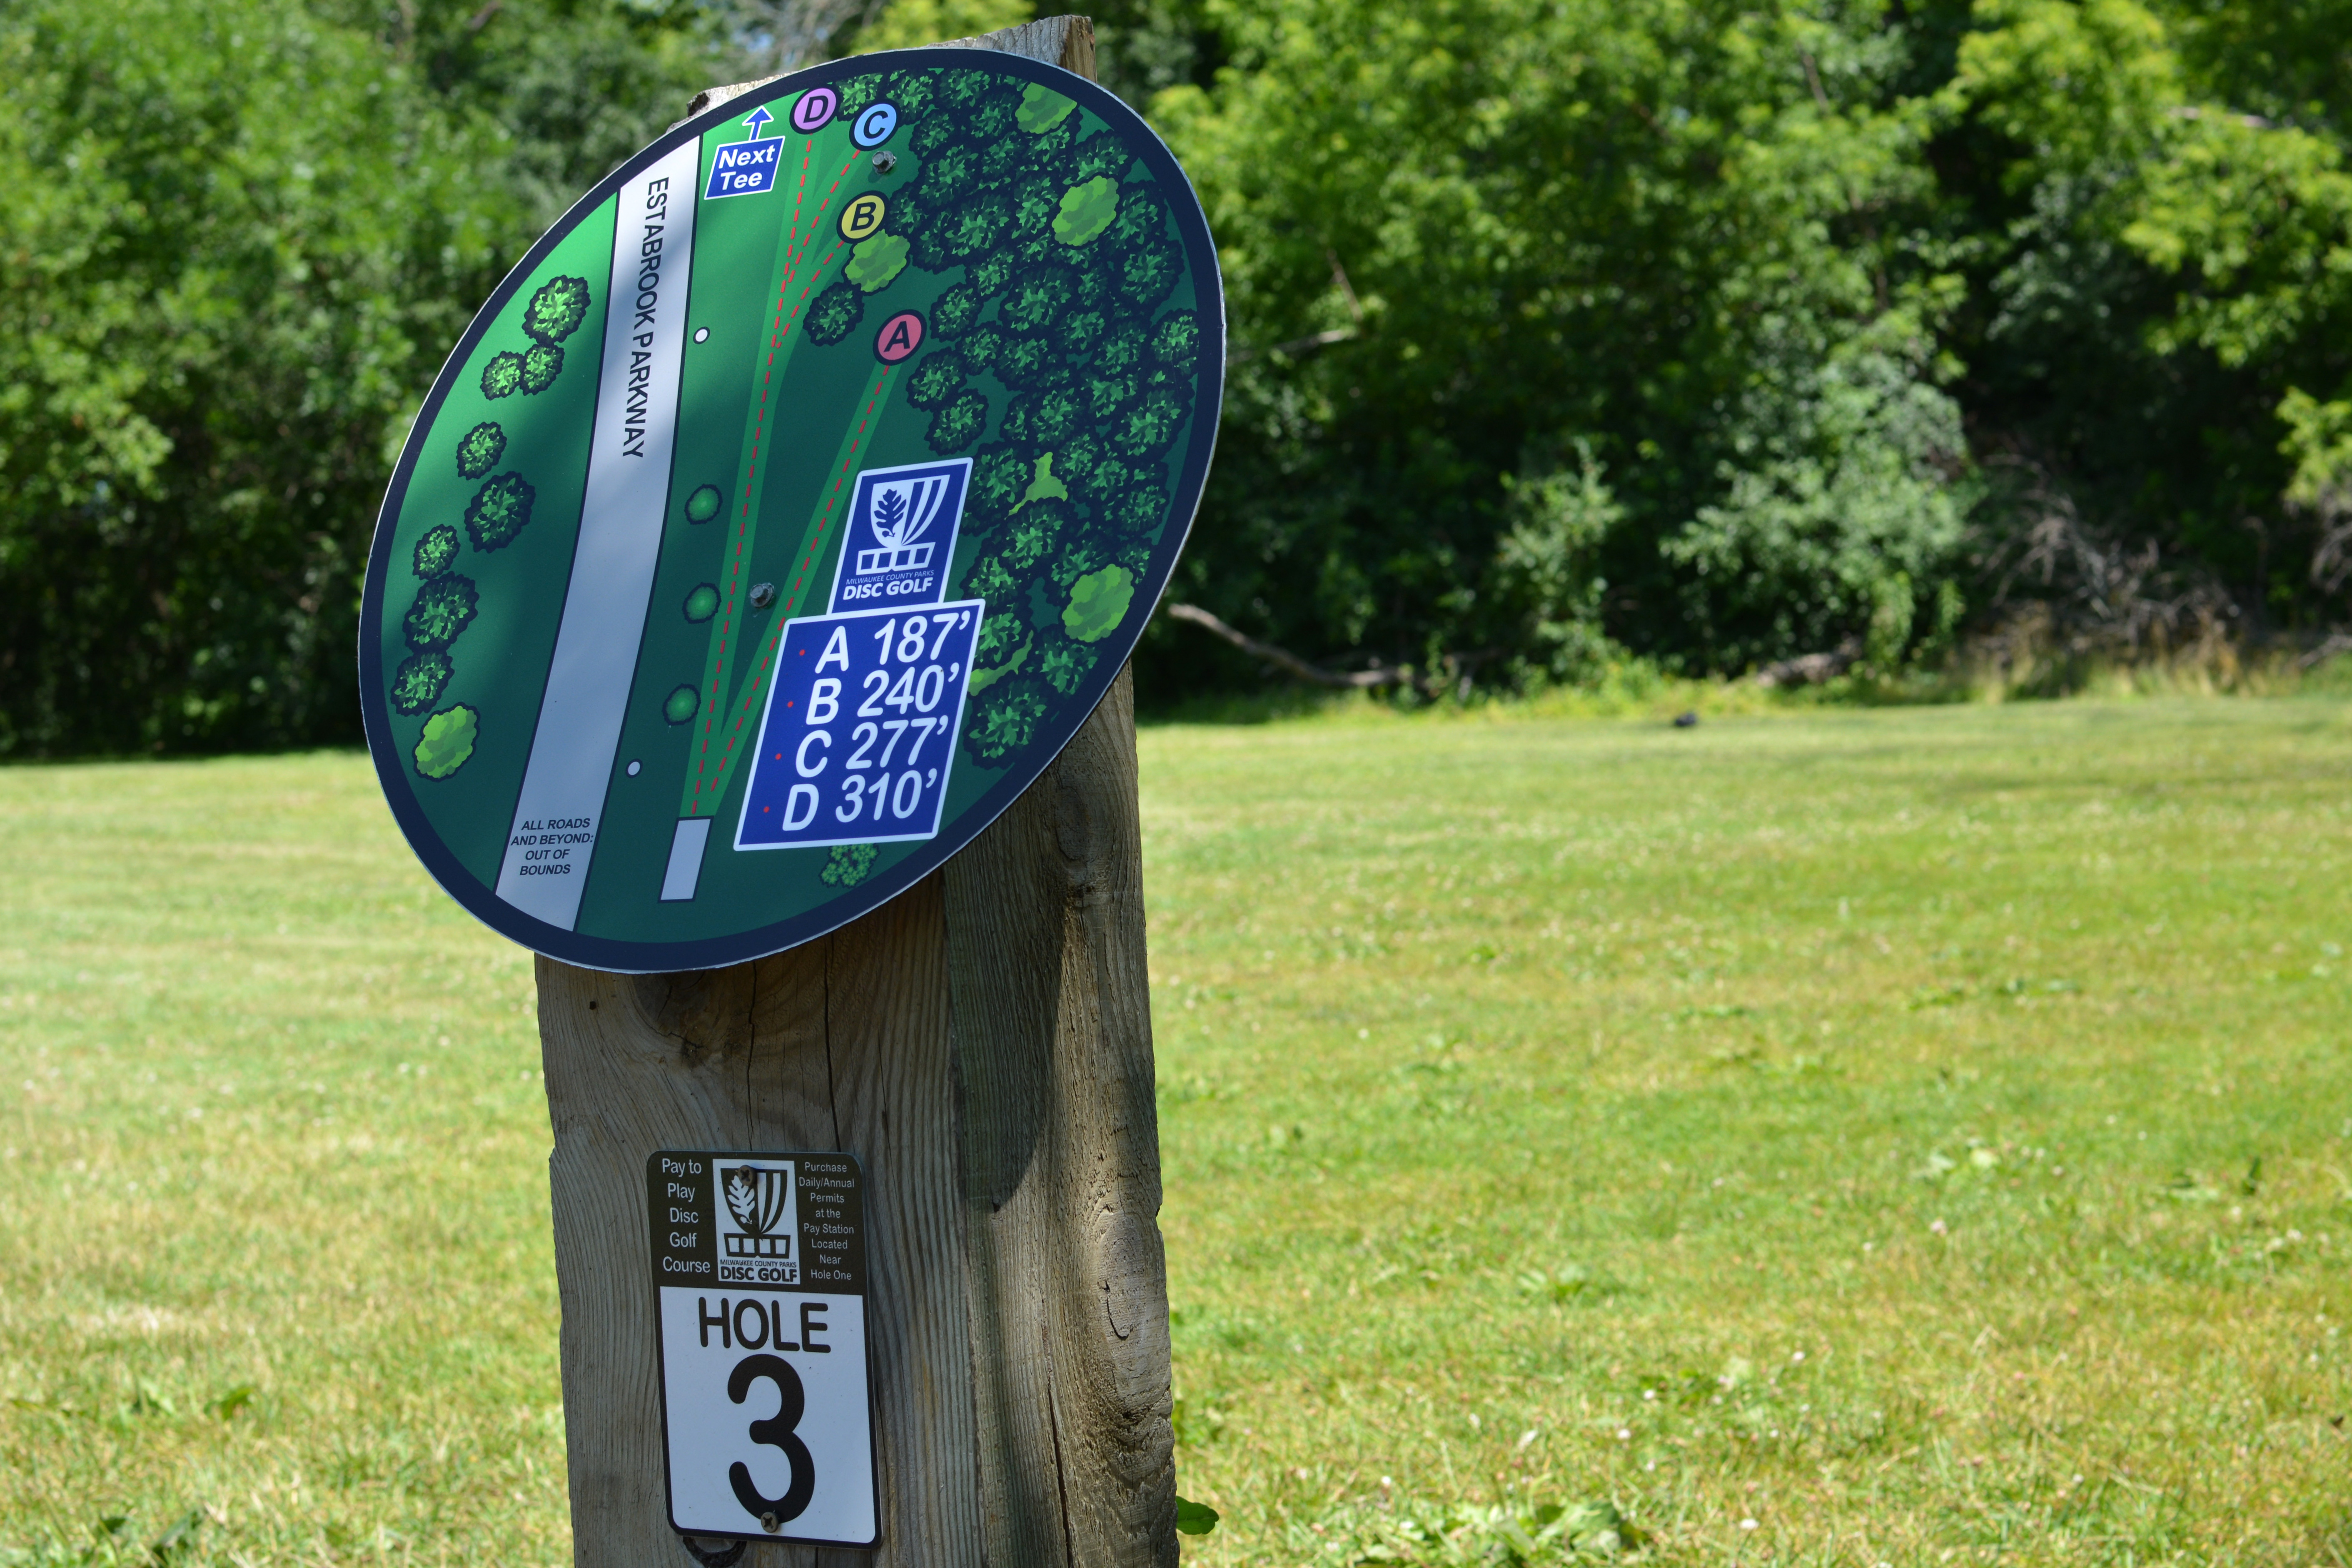 A guide to hole 3 at the Estabrook Park Disc Golf Course